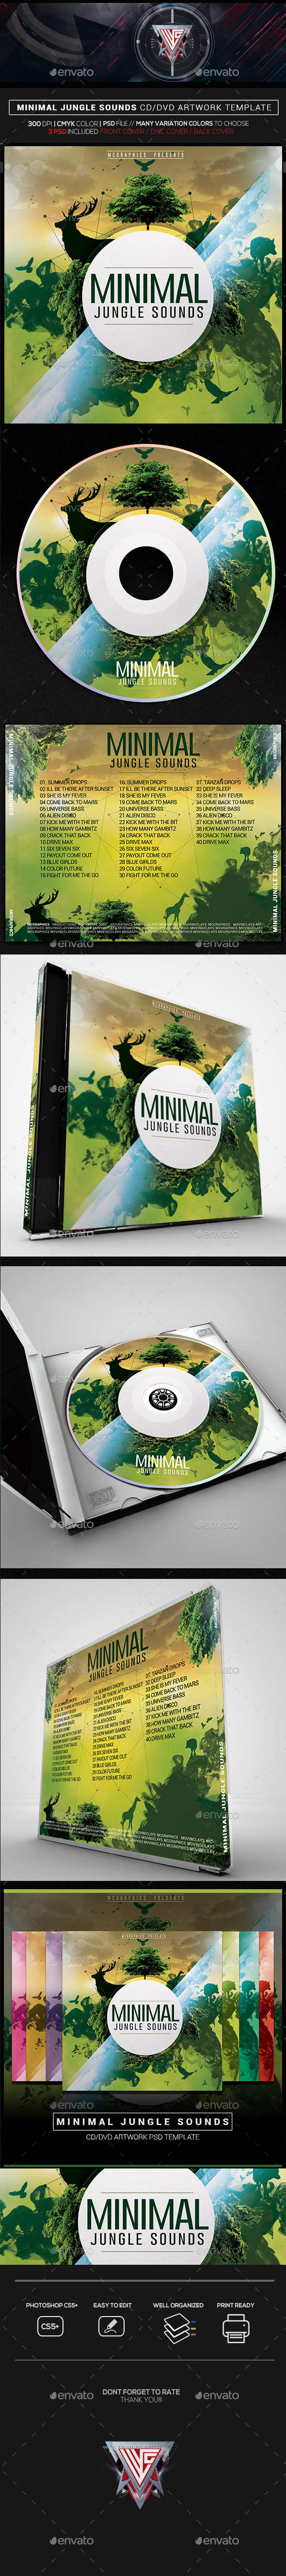 Minimal Jungle Sounds CD/DVD Template - CD & DVD Artwork Print Templates